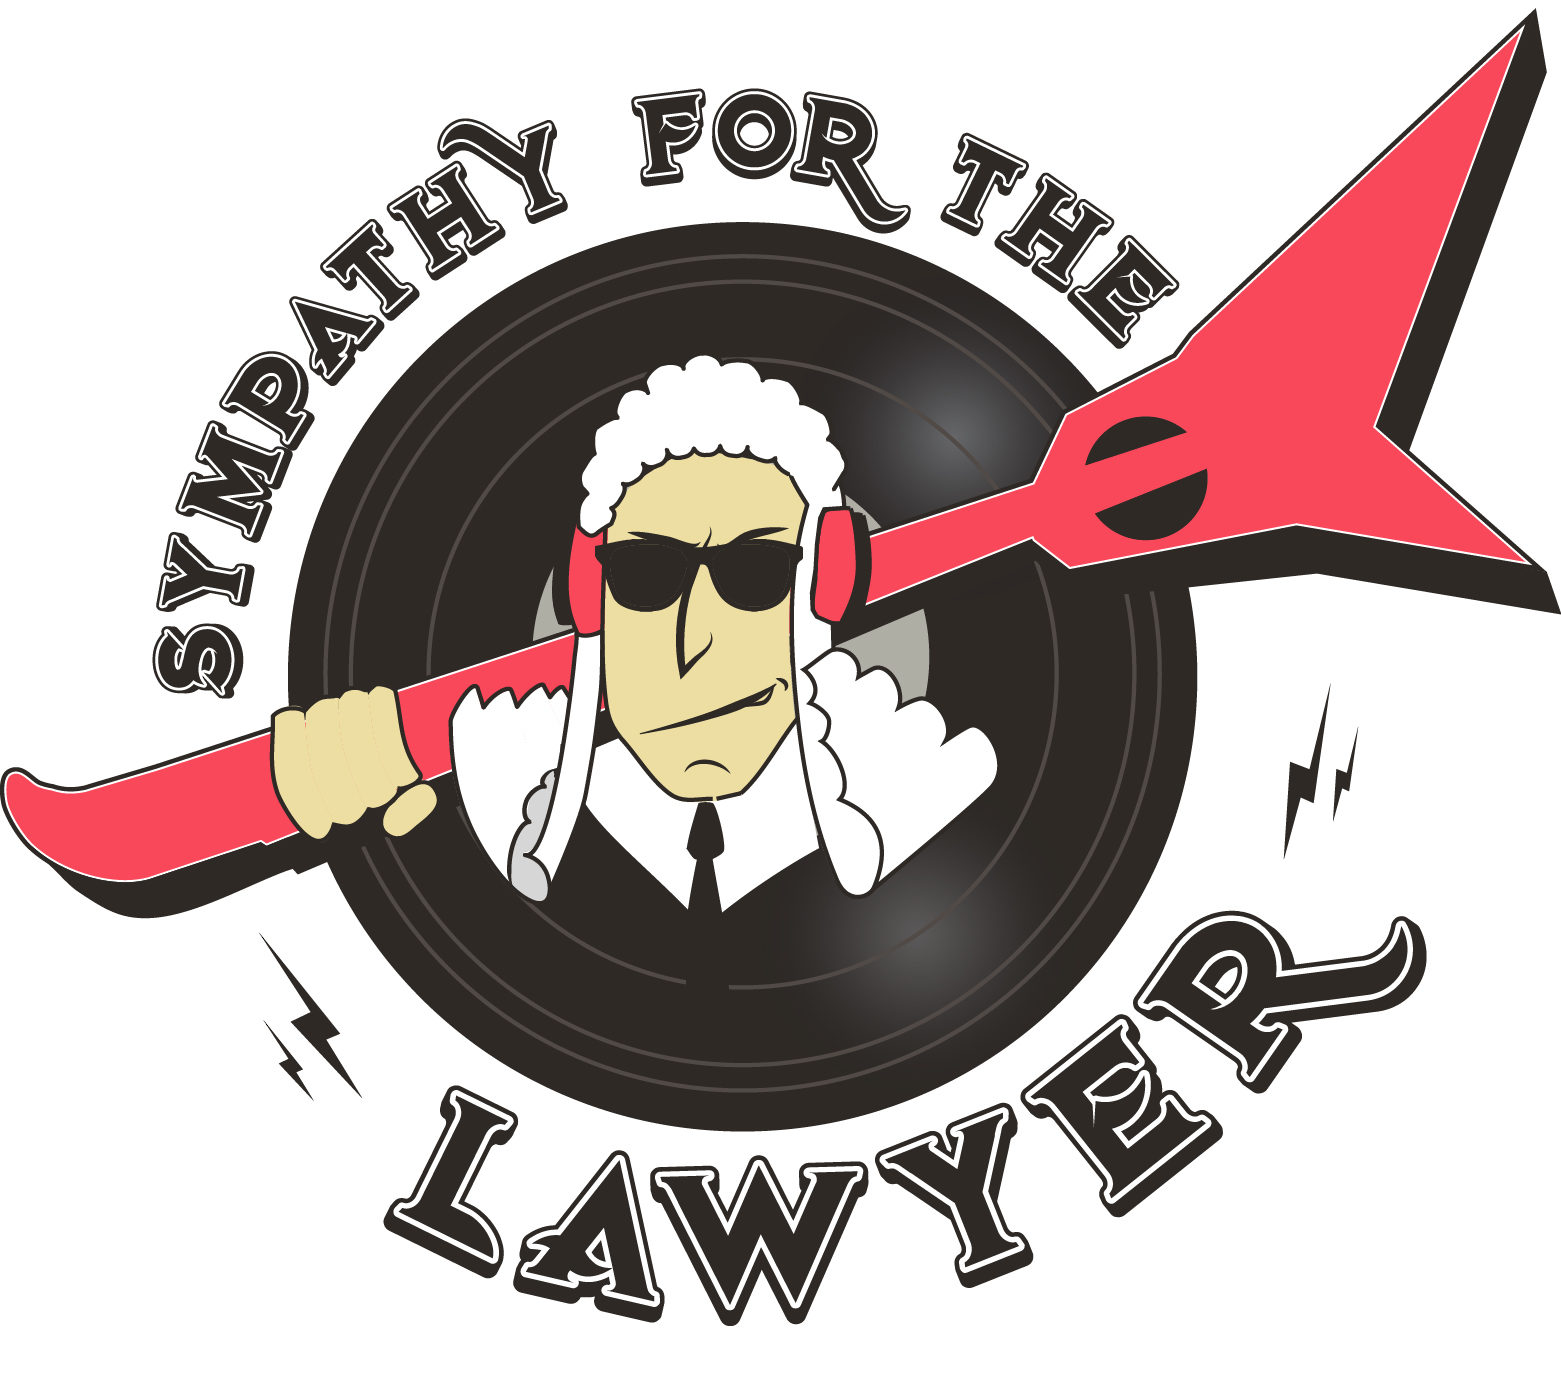 Sympathy for the Lawyer